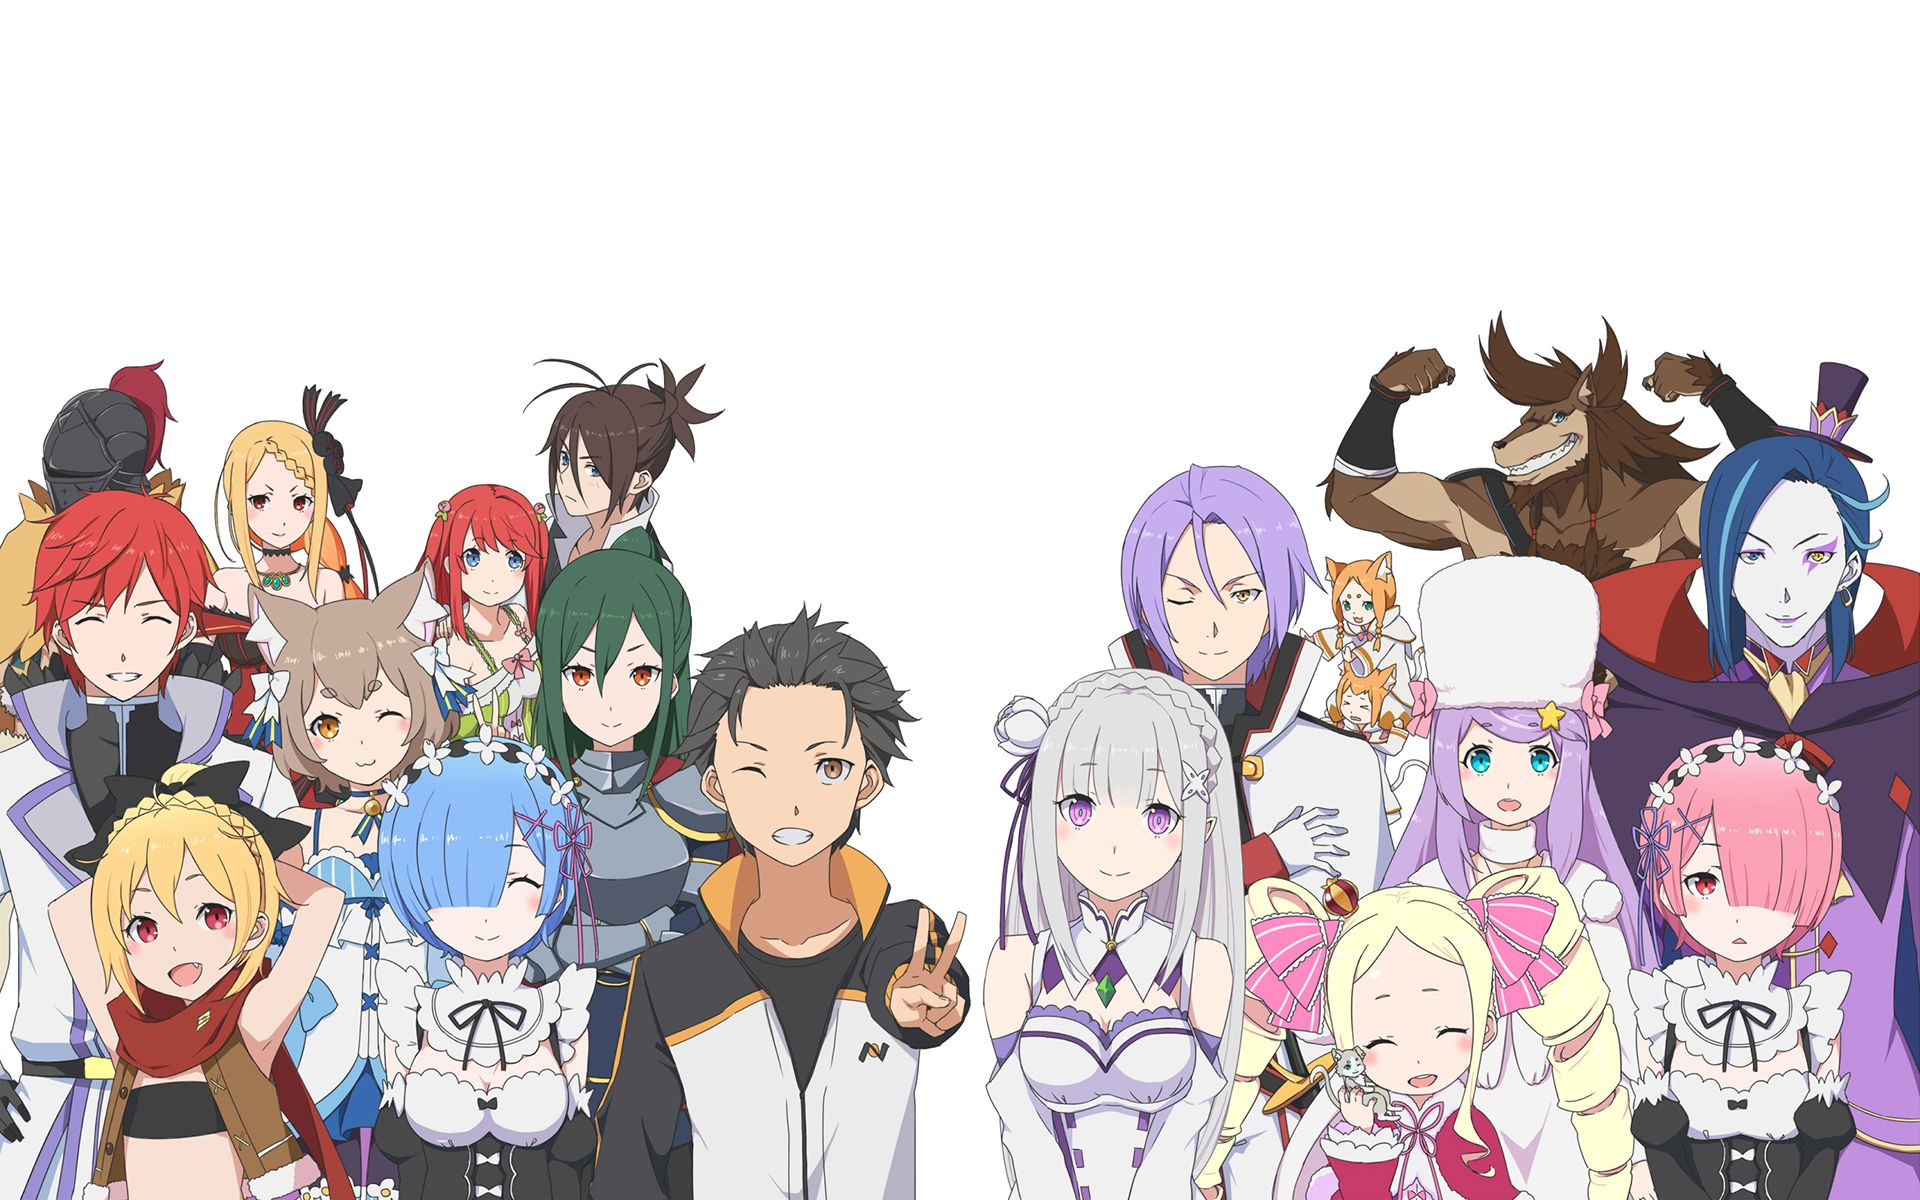 View, download, comment, and rate this 1920x1200 ReZERO